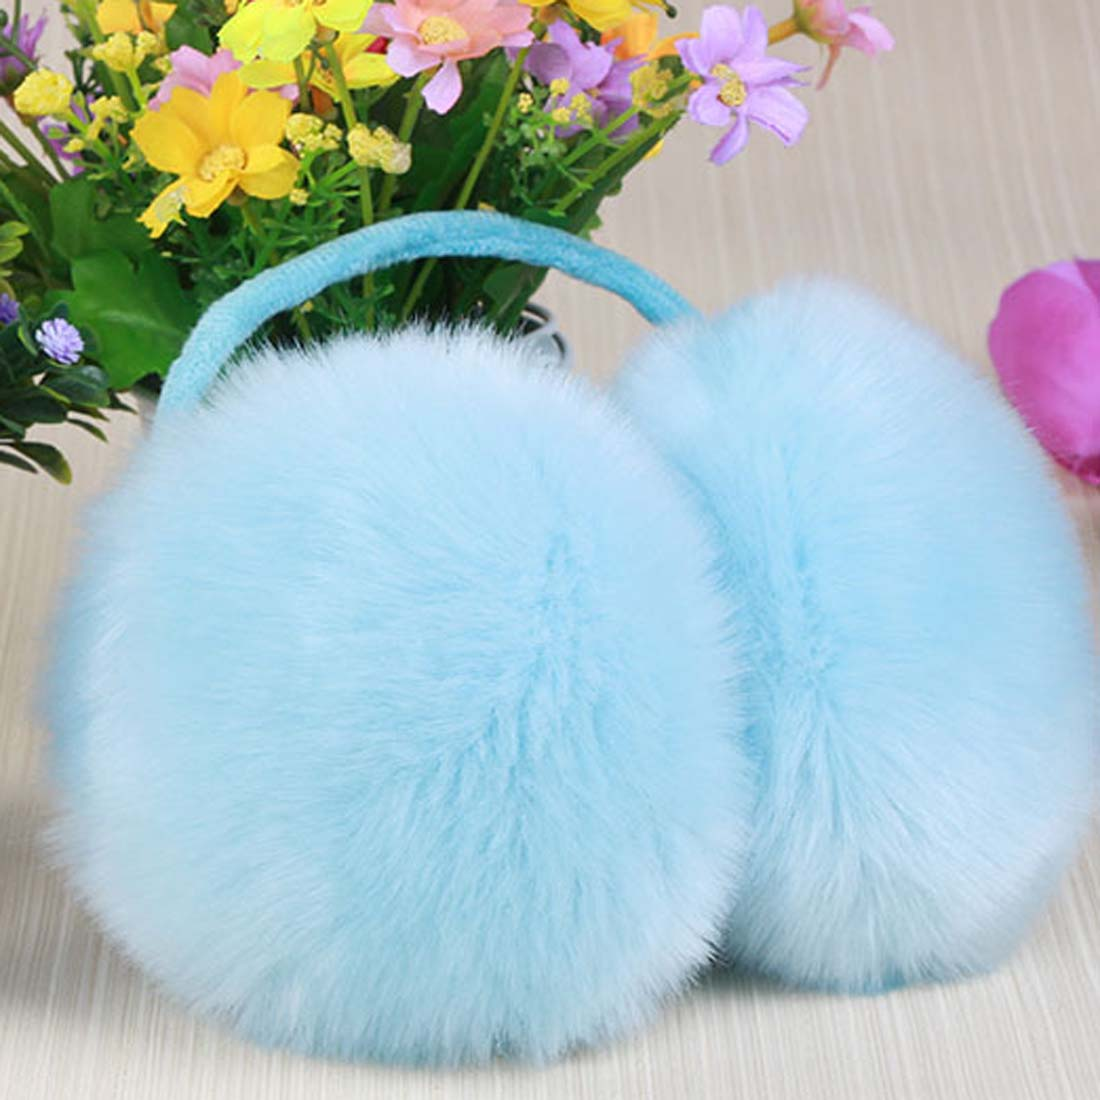 YJSFG HOUSE Adult Children Earmuffs Winter Classic Ear Cover Plush Fuzzy Faux Fur Warm Big Earmuff Fashion Girls Snow Outwear